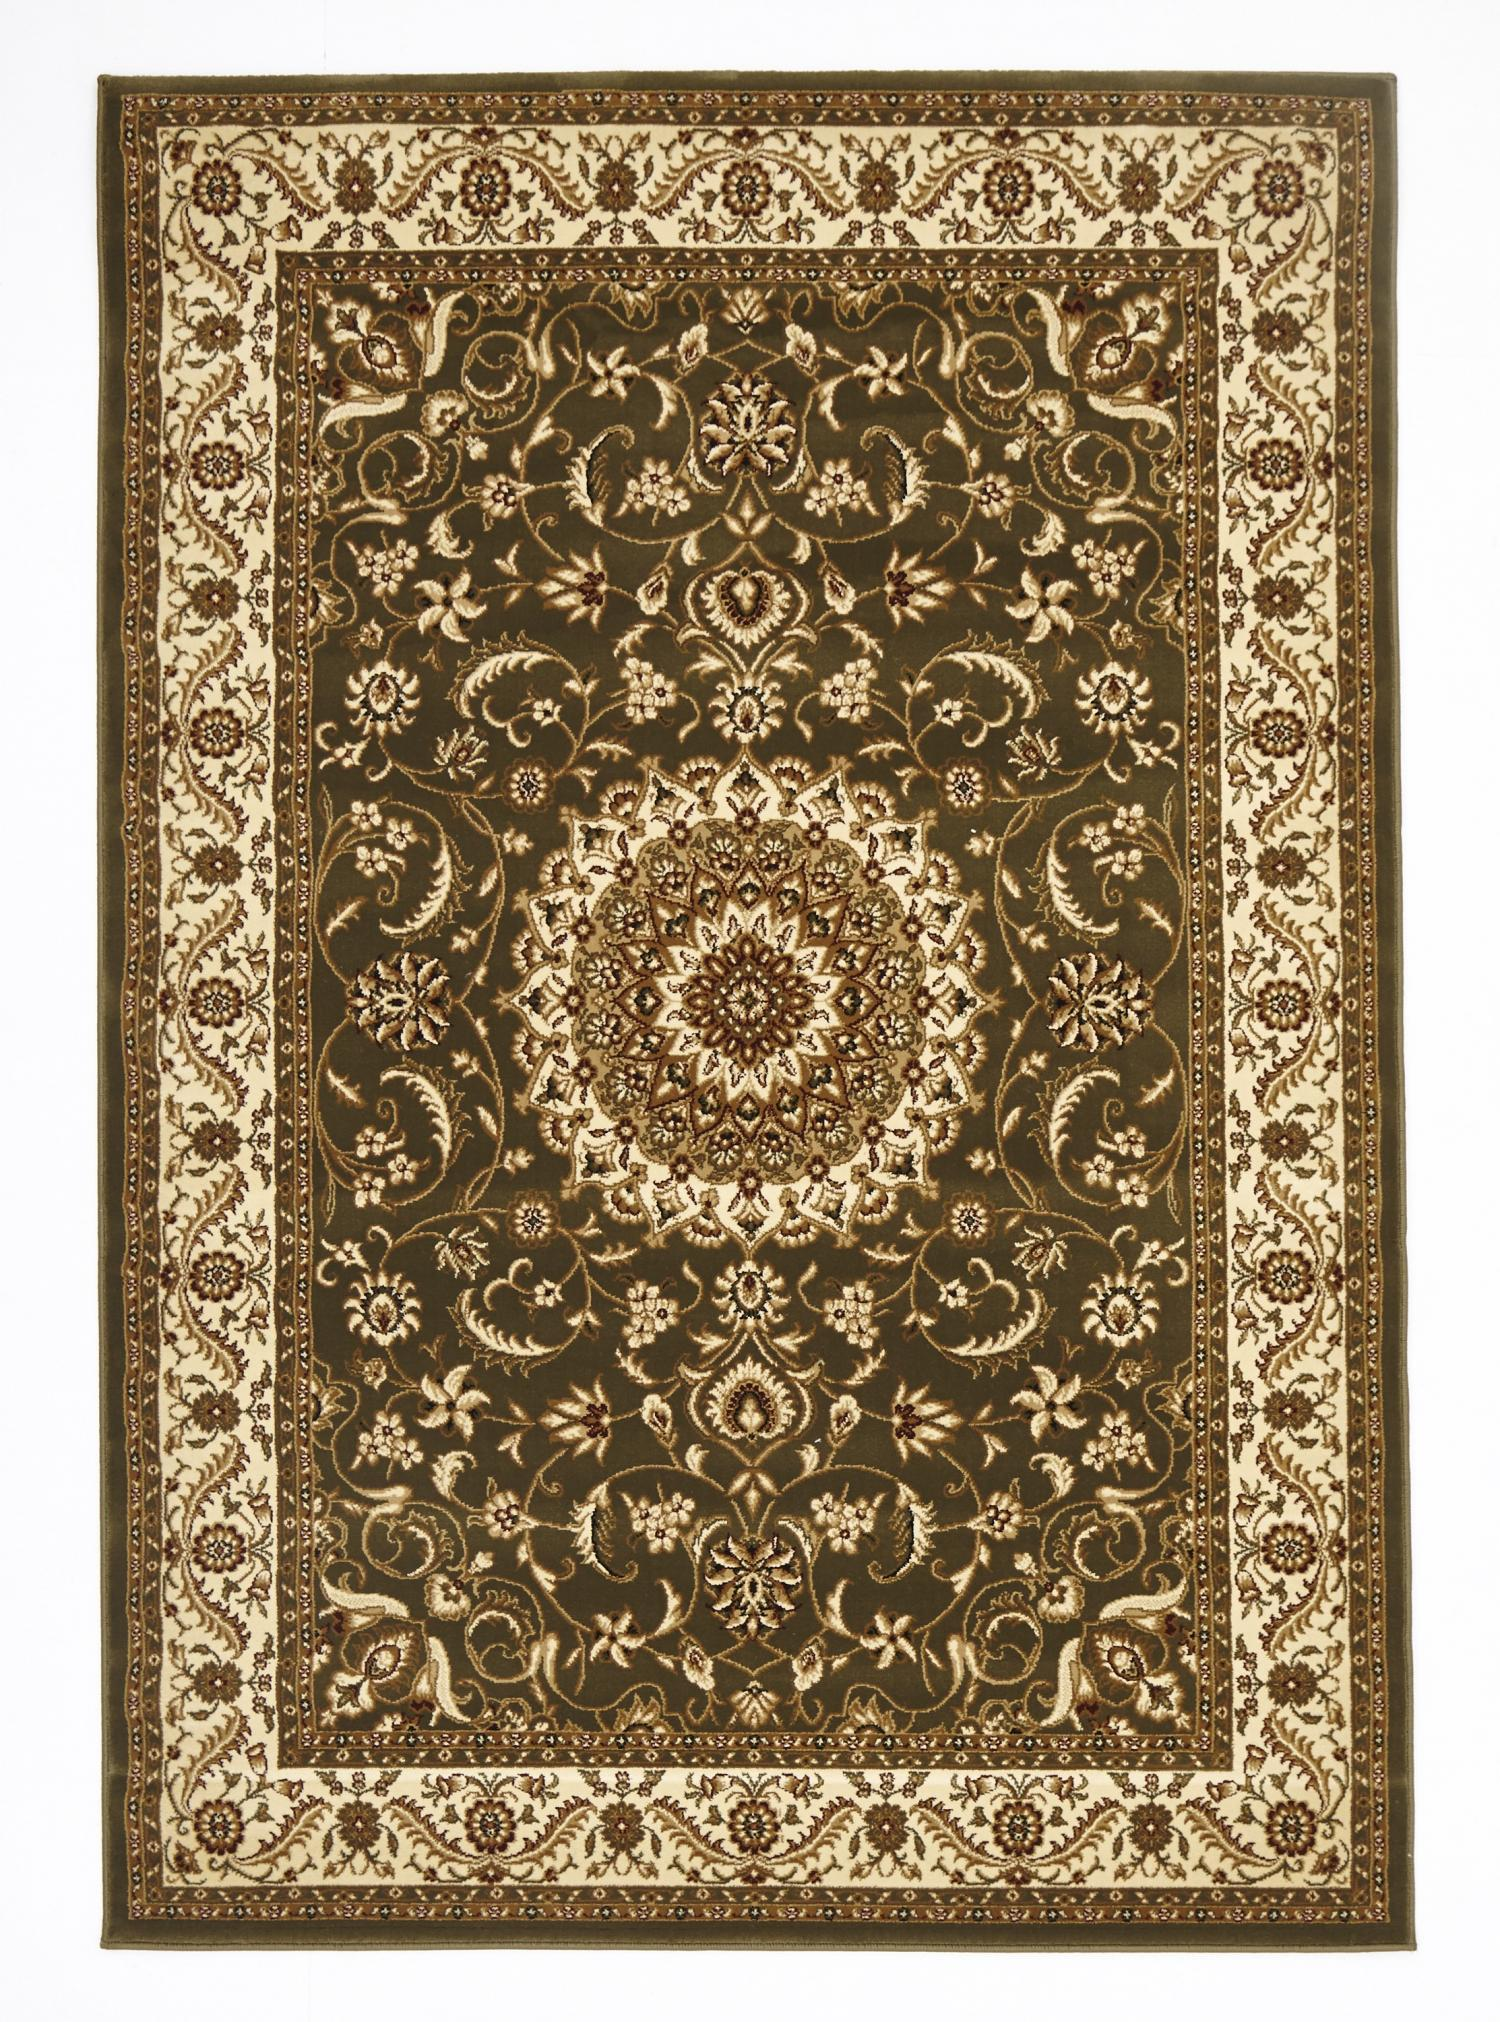 sydney-rugs-perth-stans-traditional-green-ivory